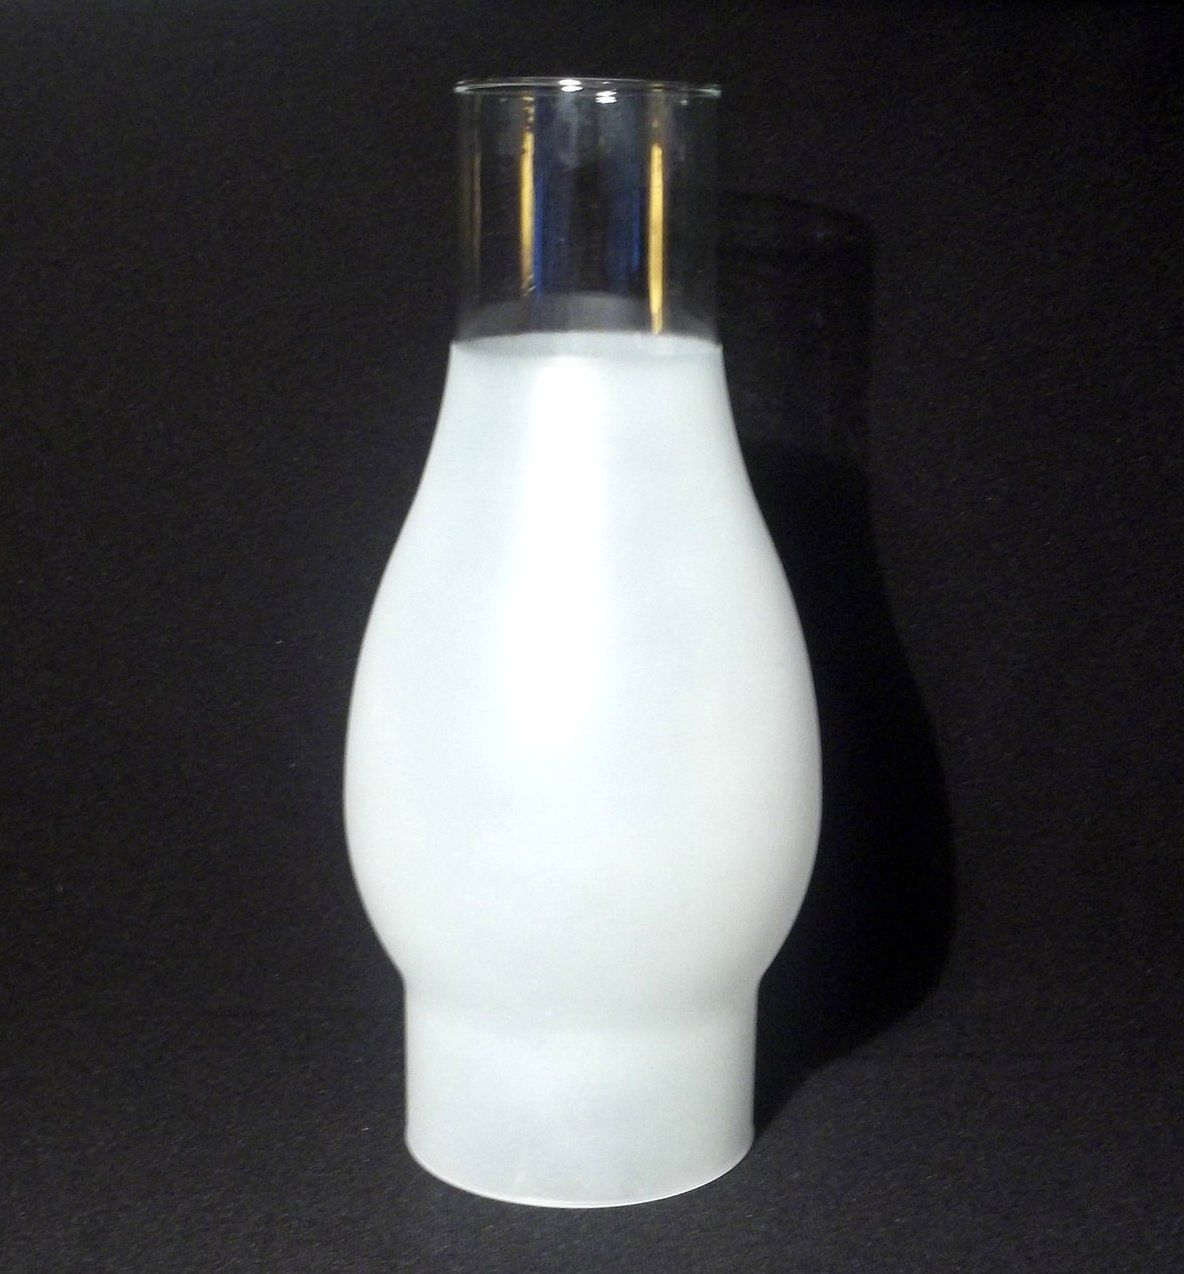 Hurricane lamp shade 34 frosted 2 58 inch fitter x 7 78 oos hurricane lamp shade 34 frosted 7 78 with 2 58 inch fitter hand blown glass replacement shade for your sconce lamp oil or electric or candle holder aloadofball Images